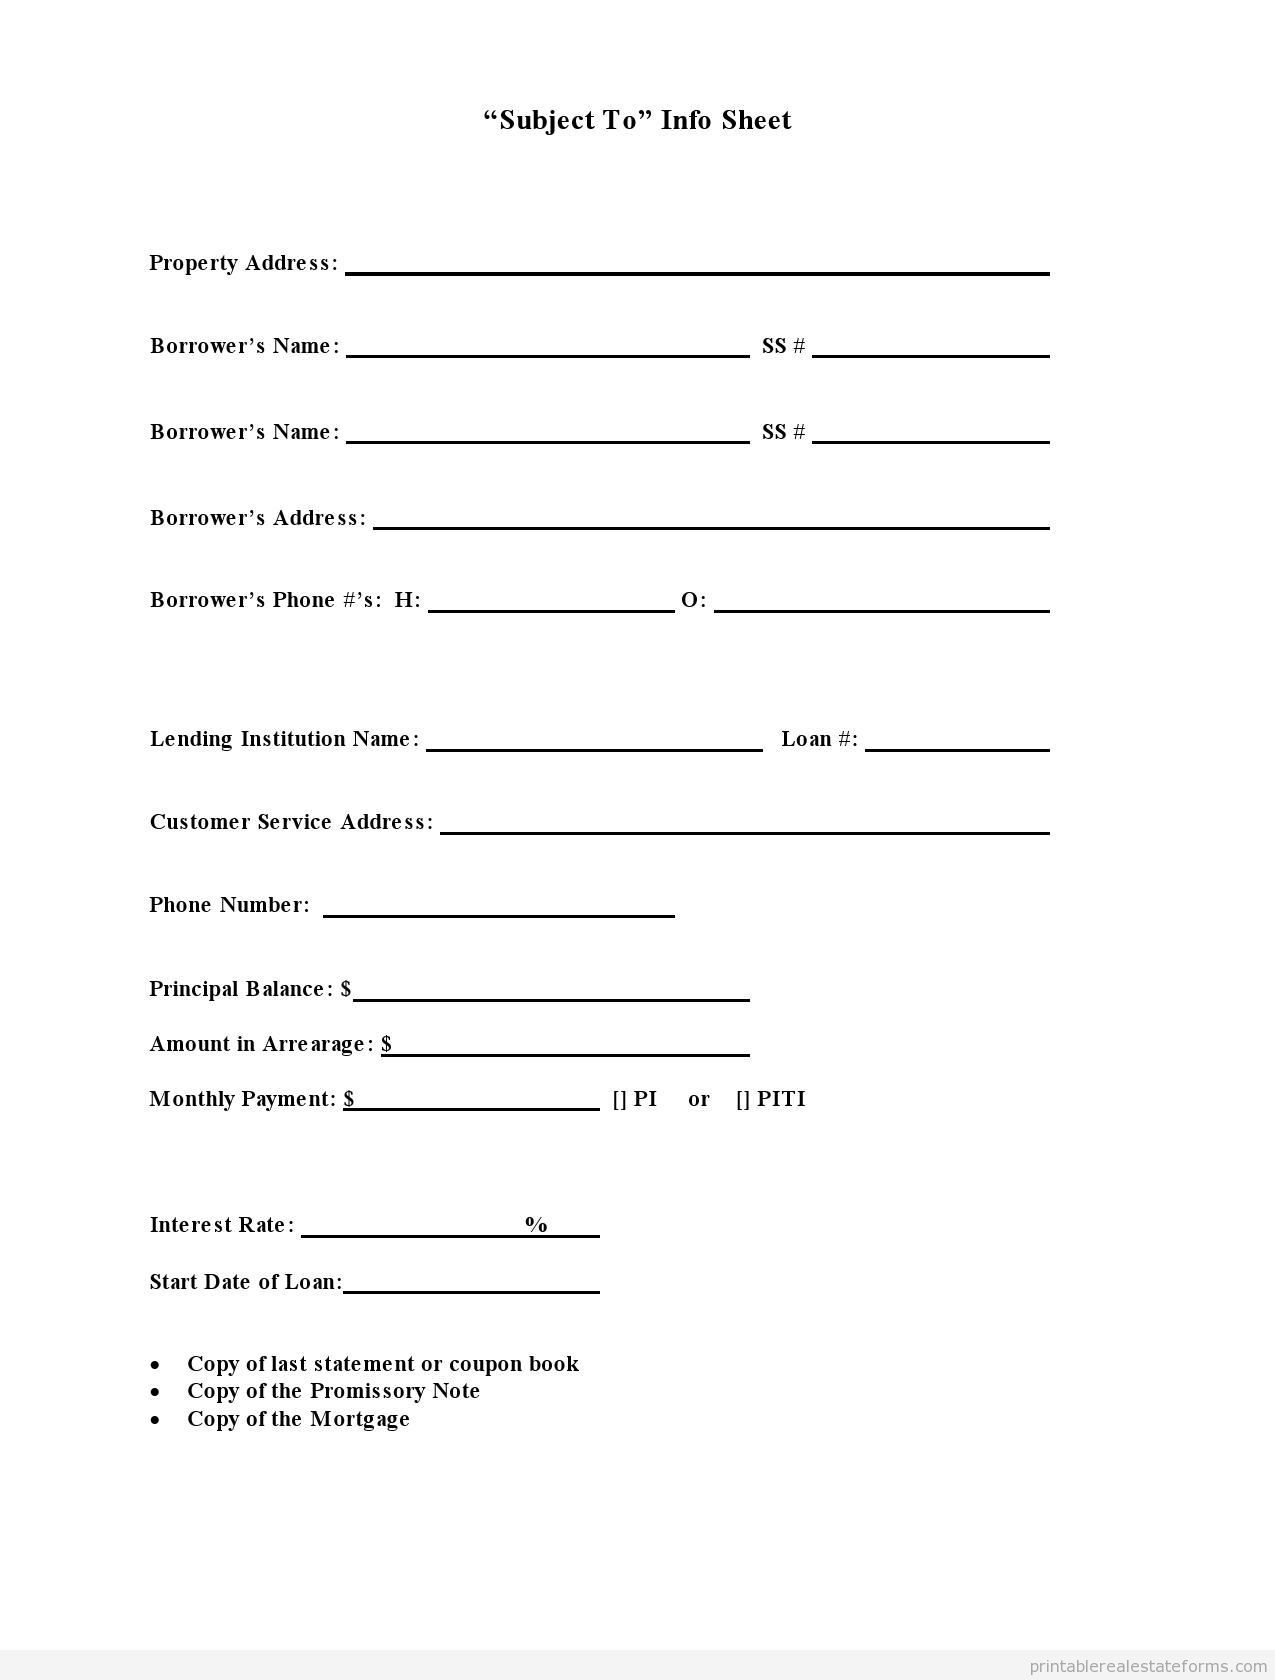 Sample Printable Subject To Info Sheet Form Real Estate Forms